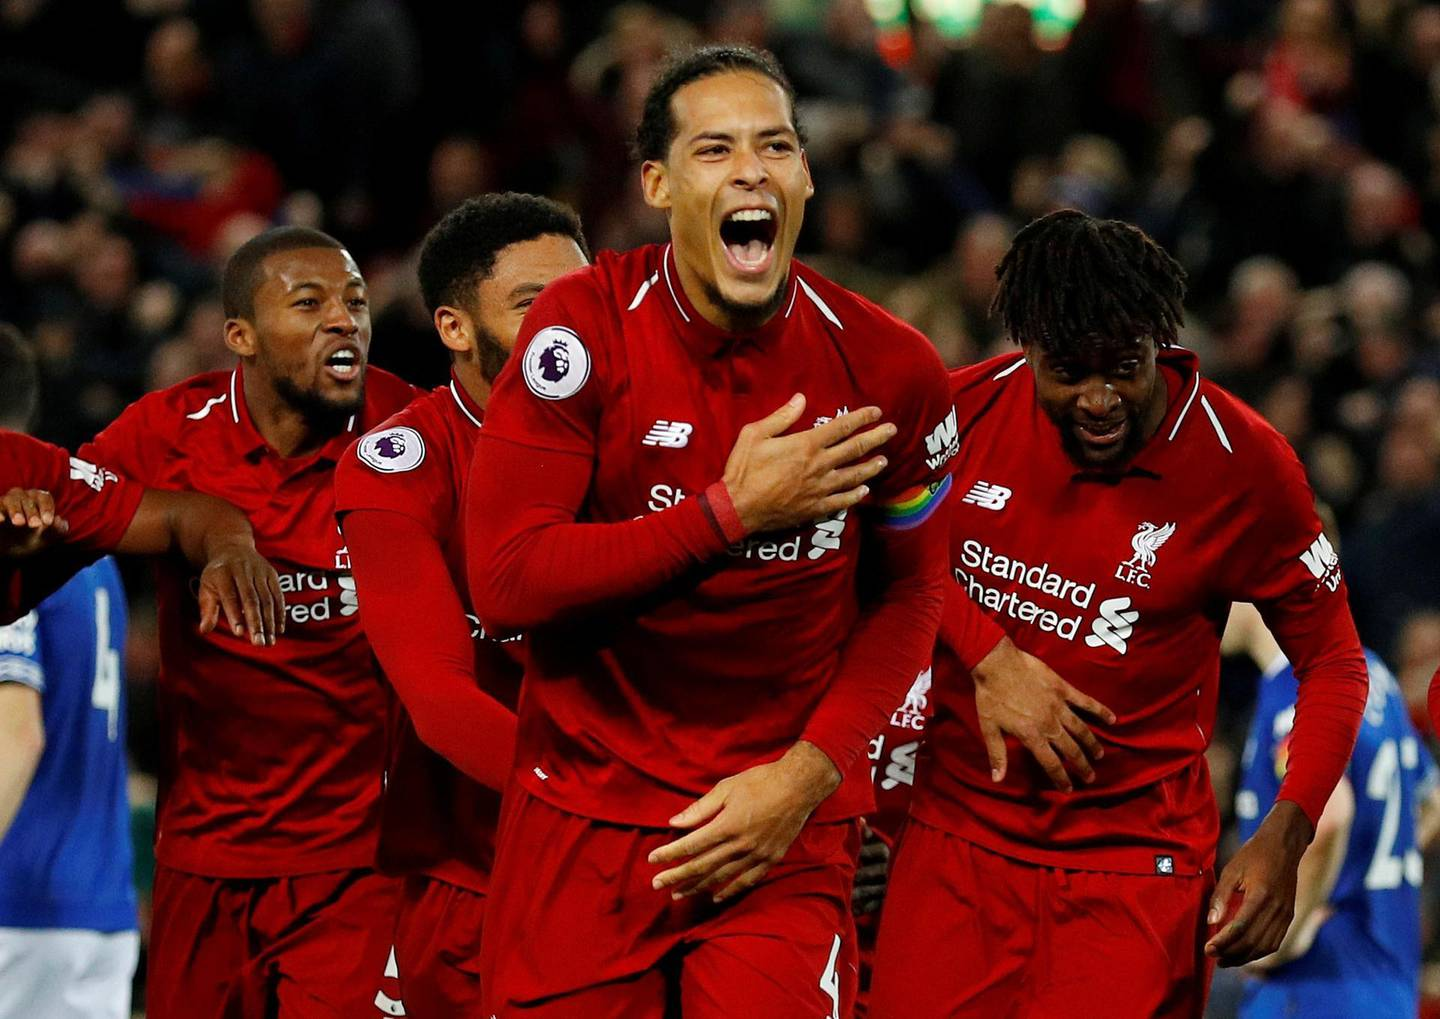 """FILE PHOTO: Soccer Football - Premier League - Liverpool v Everton - Anfield, Liverpool, Britain - December 2, 2018  Liverpool's Divock Origi celebrates scoring their first goal with Virgil van Dijk and team mates  REUTERS/Phil Noble  EDITORIAL USE ONLY. No use with unauthorized audio, video, data, fixture lists, club/league logos or """"live"""" services. Online in-match use limited to 75 images, no video emulation. No use in betting, games or single club/league/player publications.  Please contact your account representative for further details./File Photo"""